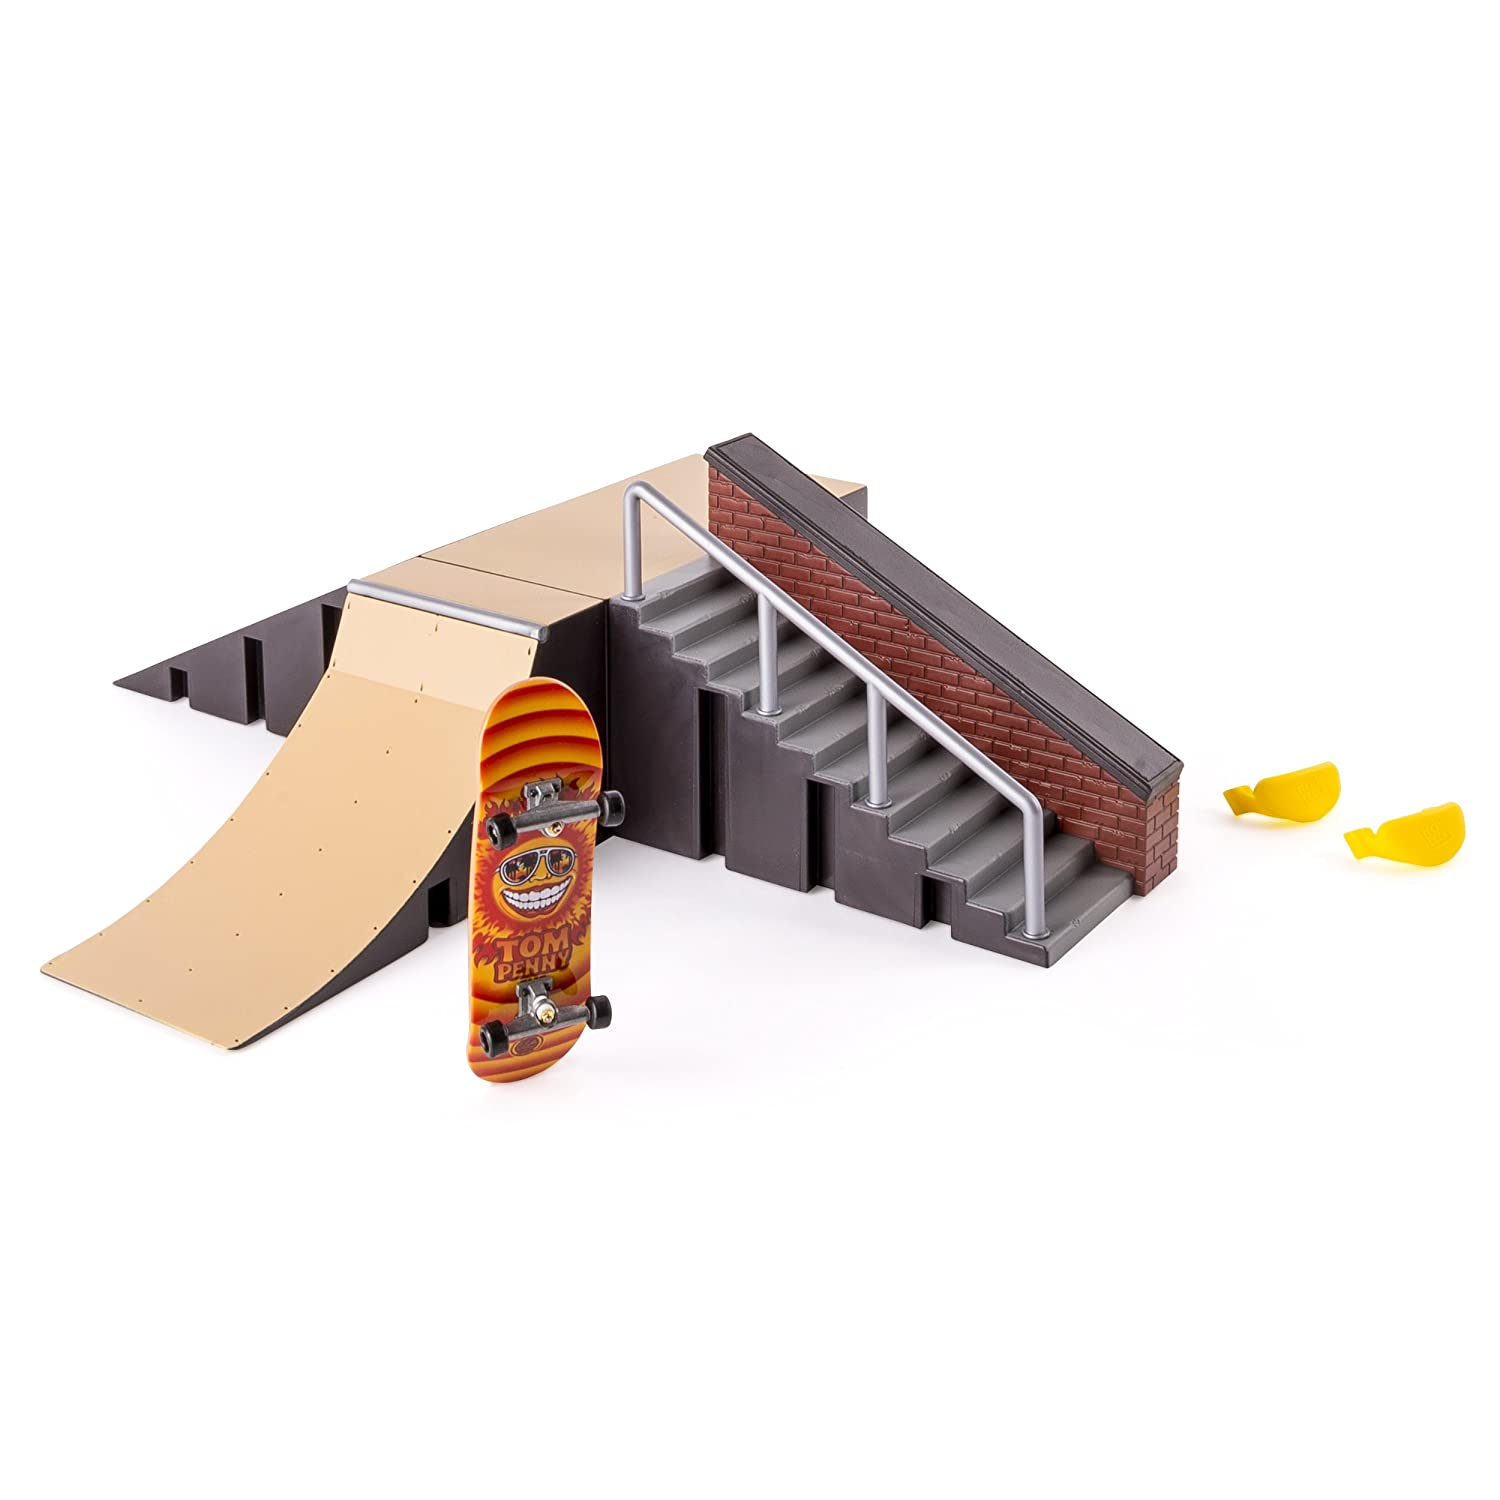 Amazon tech deck starter kit ramp set and board toys games baanklon Gallery